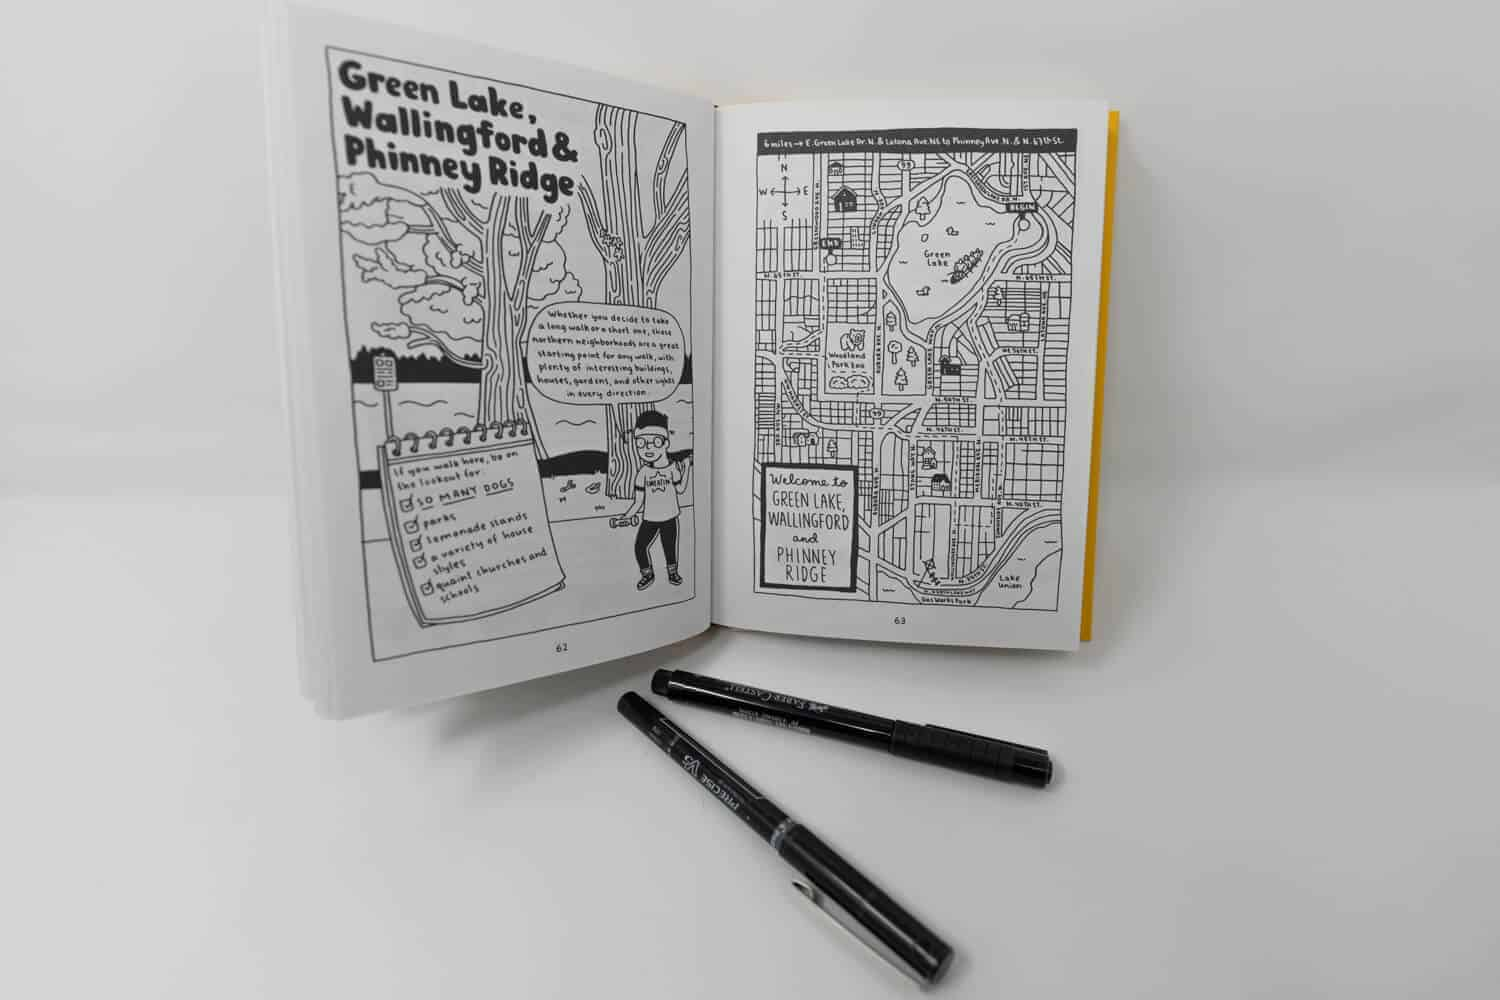 Seattle Walk Report Travel Sketch Book